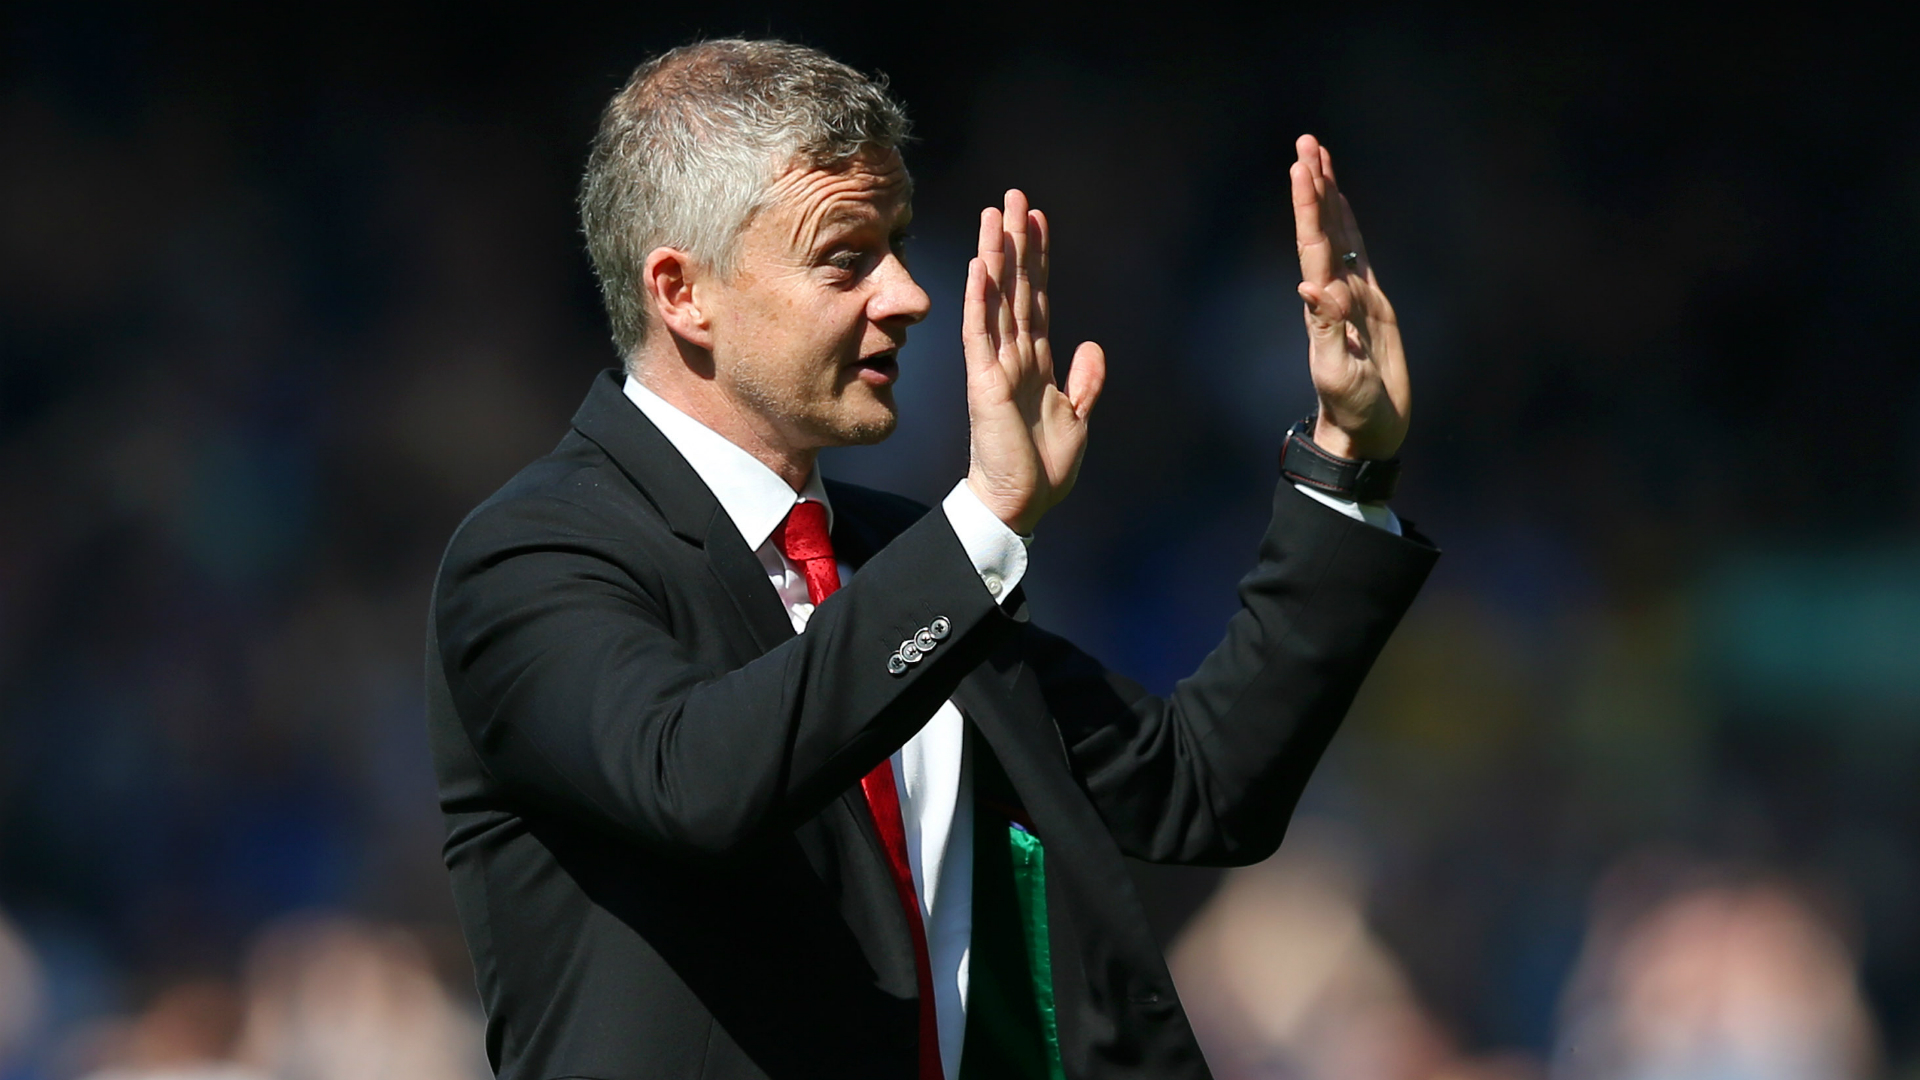 Everything went wrong – Solskjaer apologises for Man Utd's Everton horror show